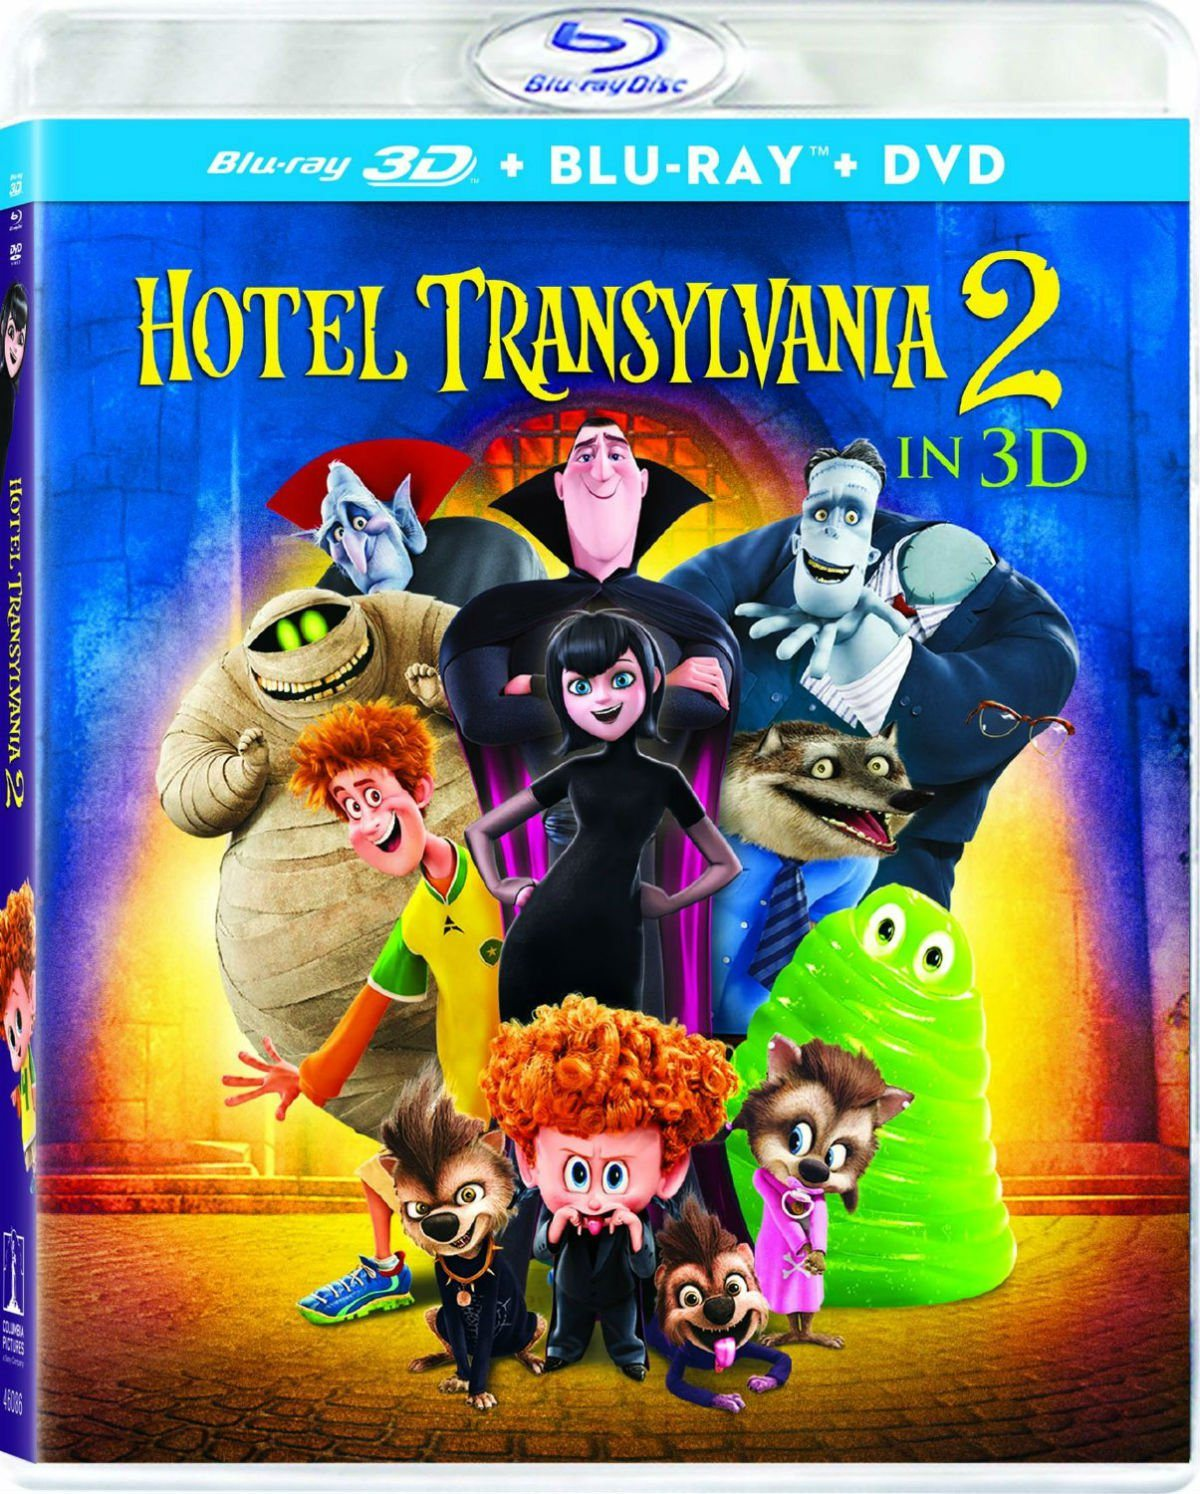 For The Kiddos, 'Hotel Transylvania 2' Will Be Released In